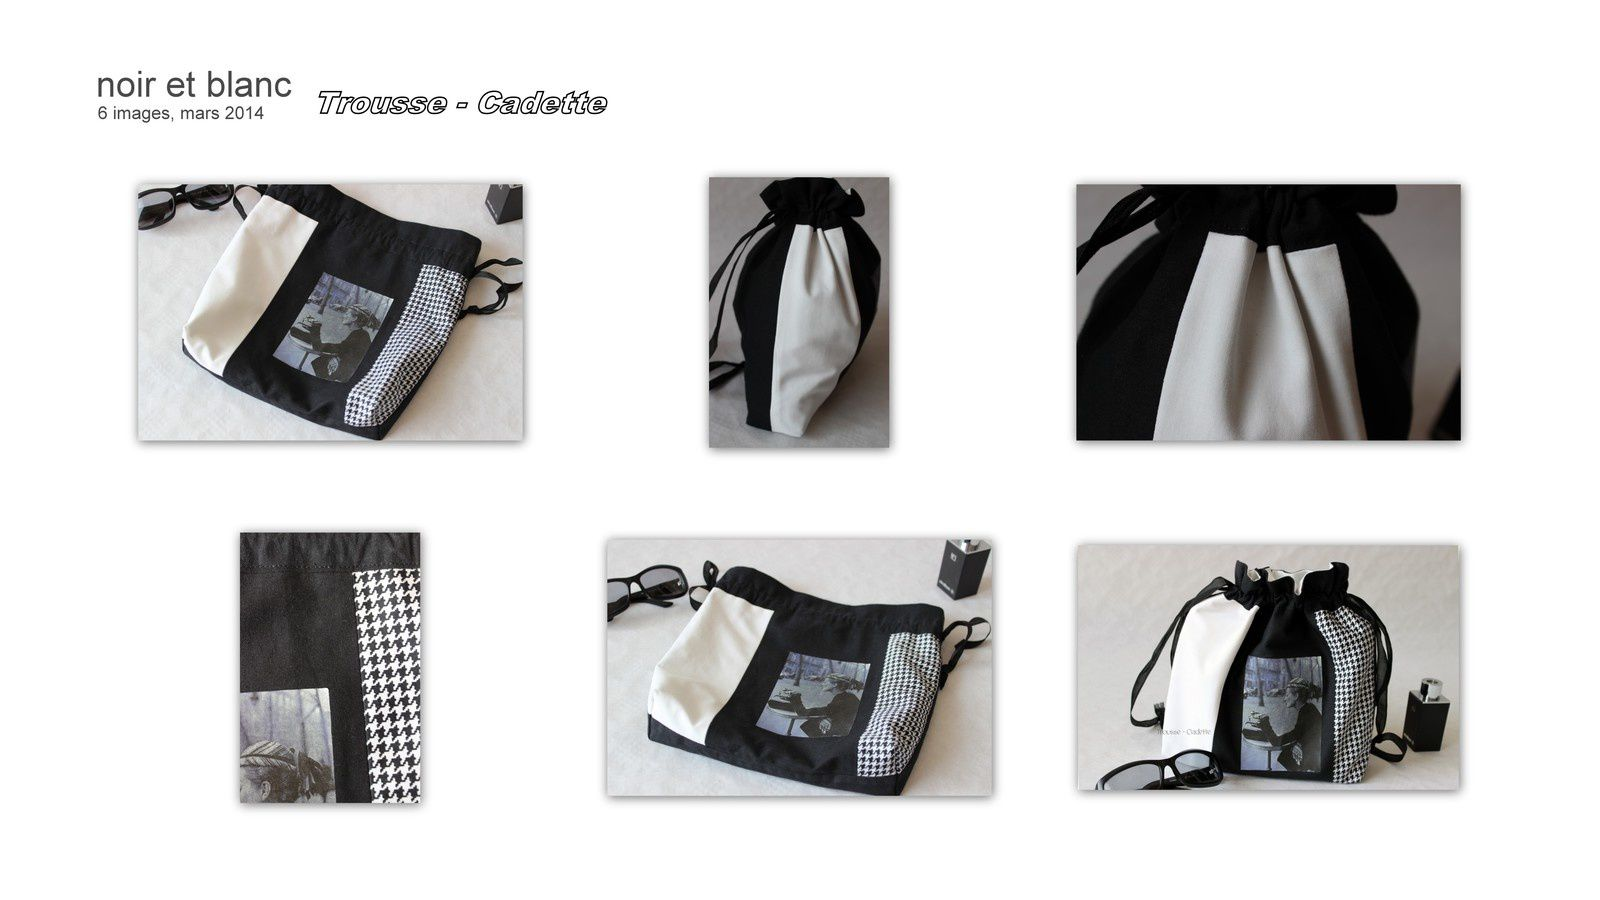 pochette de voyage so chic le noir et blanc trousse cadette. Black Bedroom Furniture Sets. Home Design Ideas